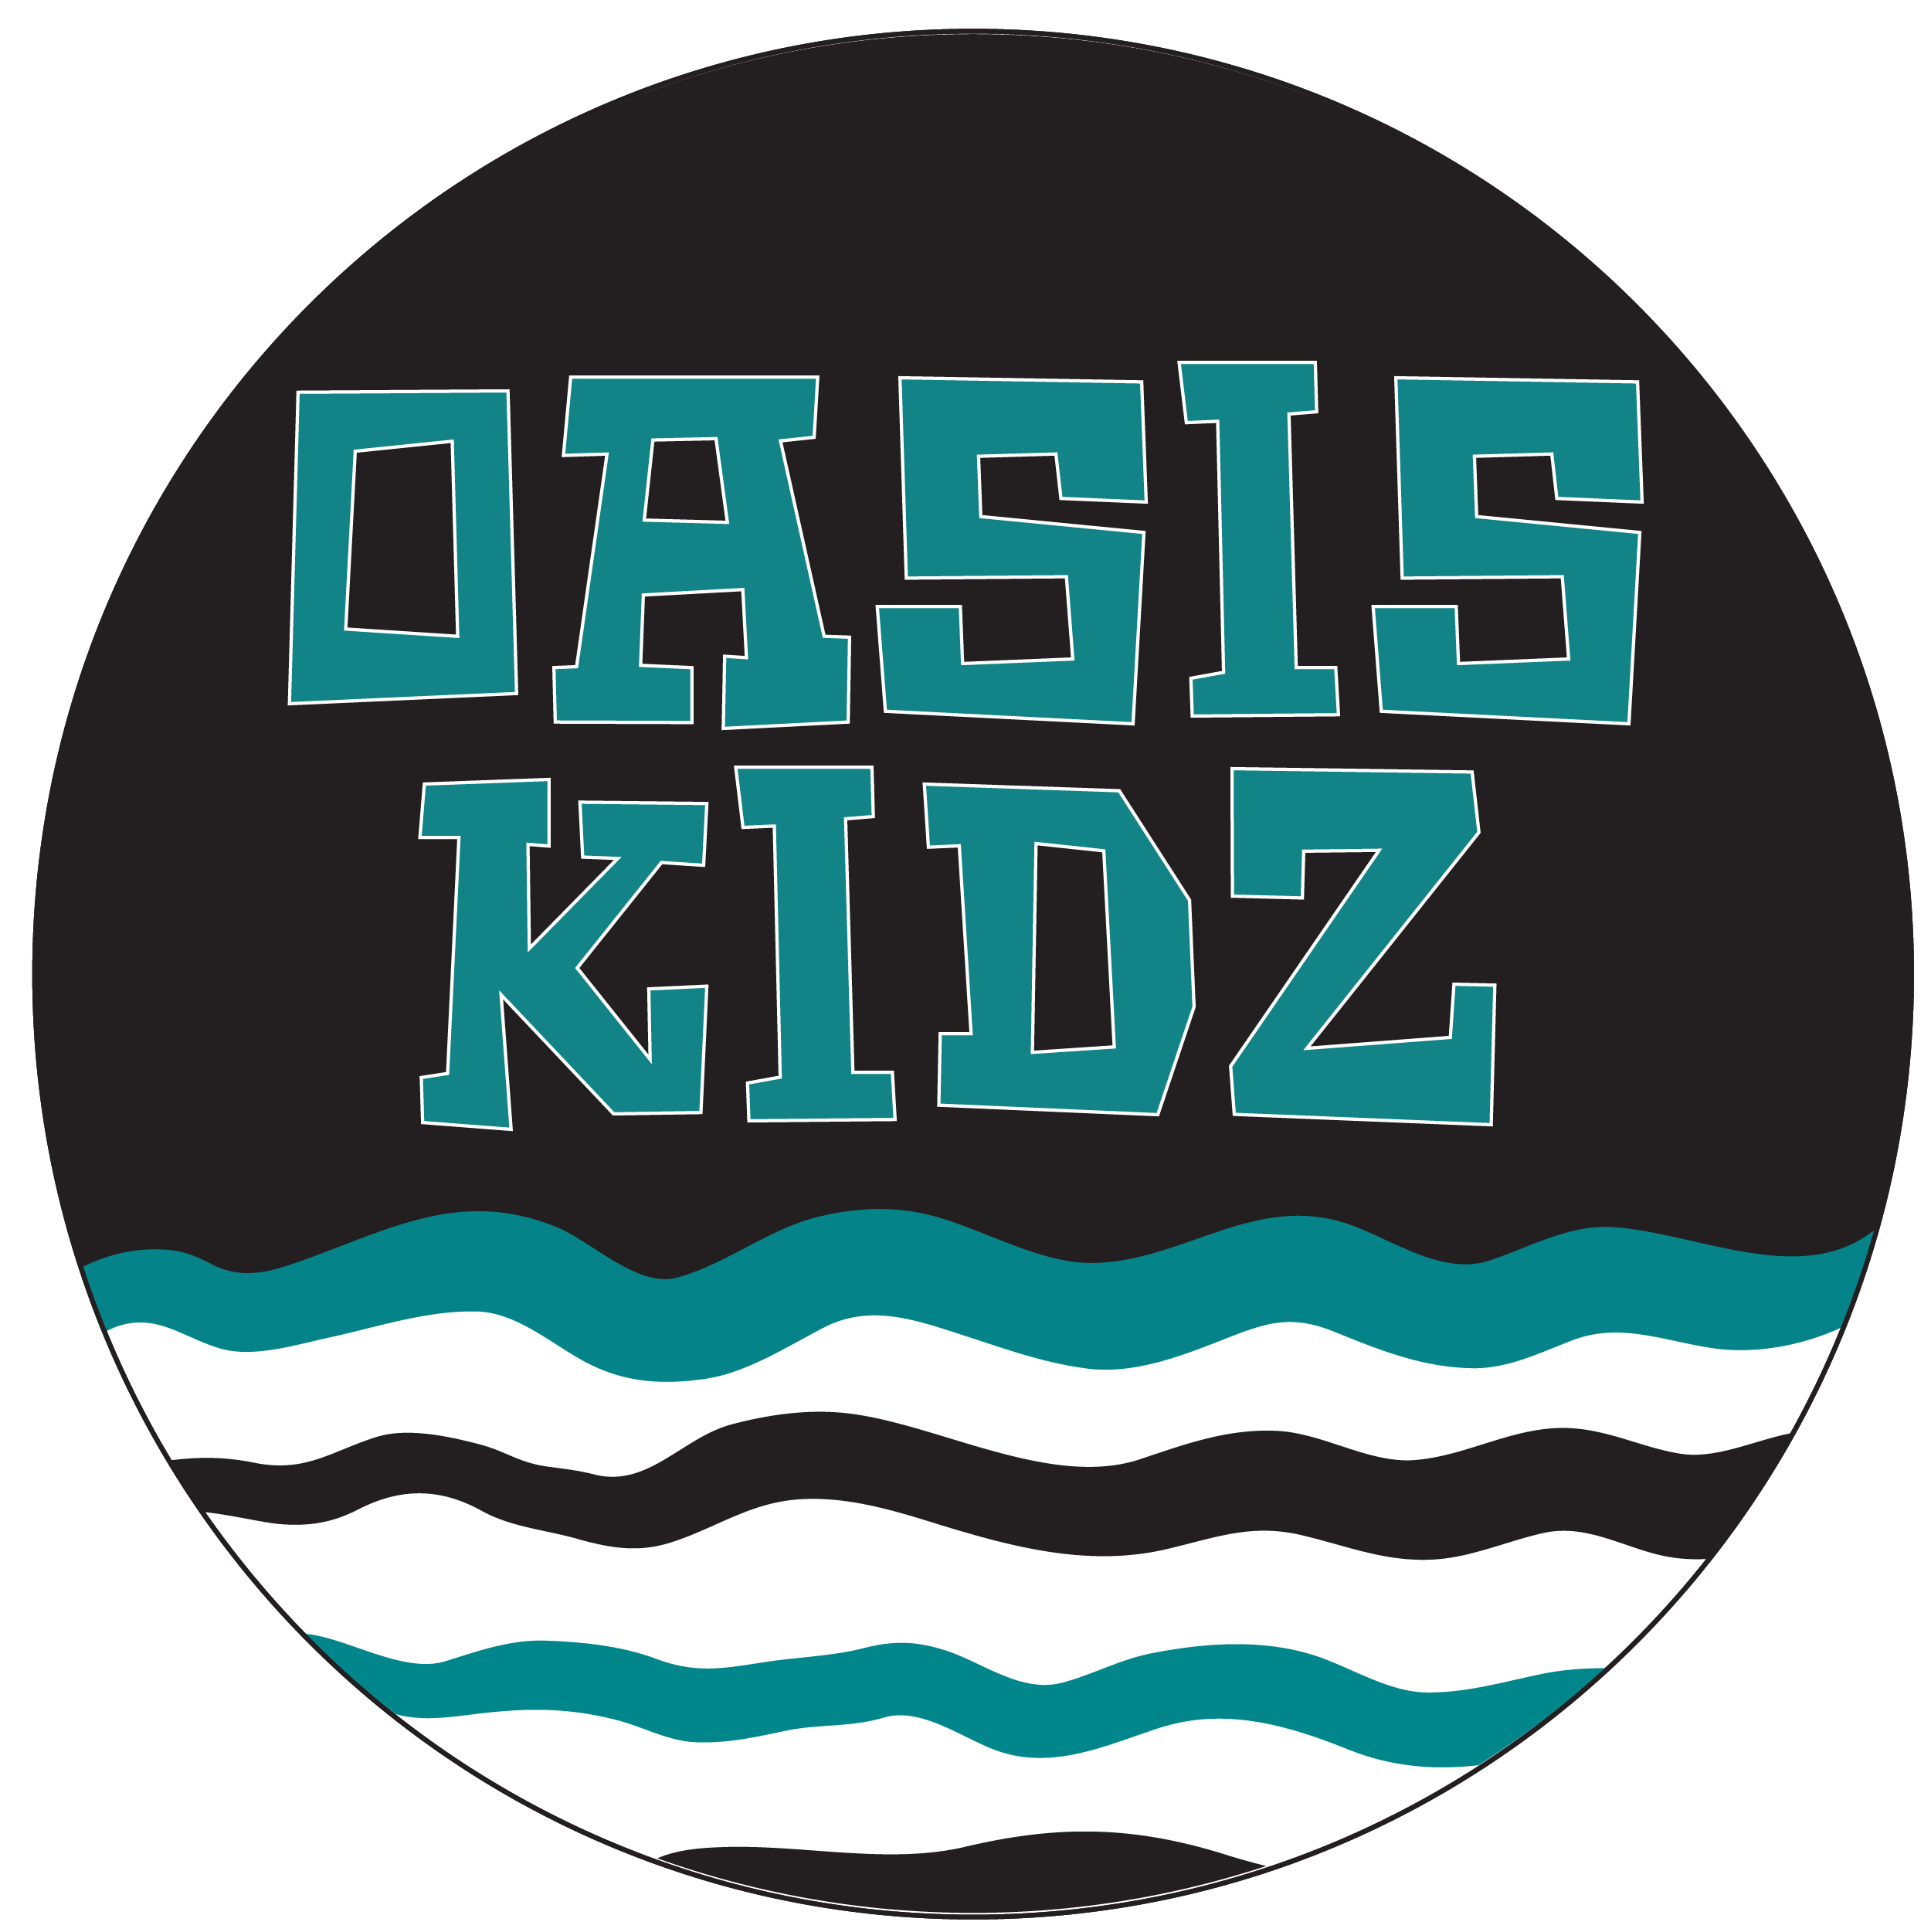 Nursery - 5th Grade - At Oasis Church, we seek for your kids to enjoy church and seek to make it fun and creative so they can enjoy every moment learning about Jesus.Oasis Kidz meets each Sunday at both the 9:30 & 11am services.